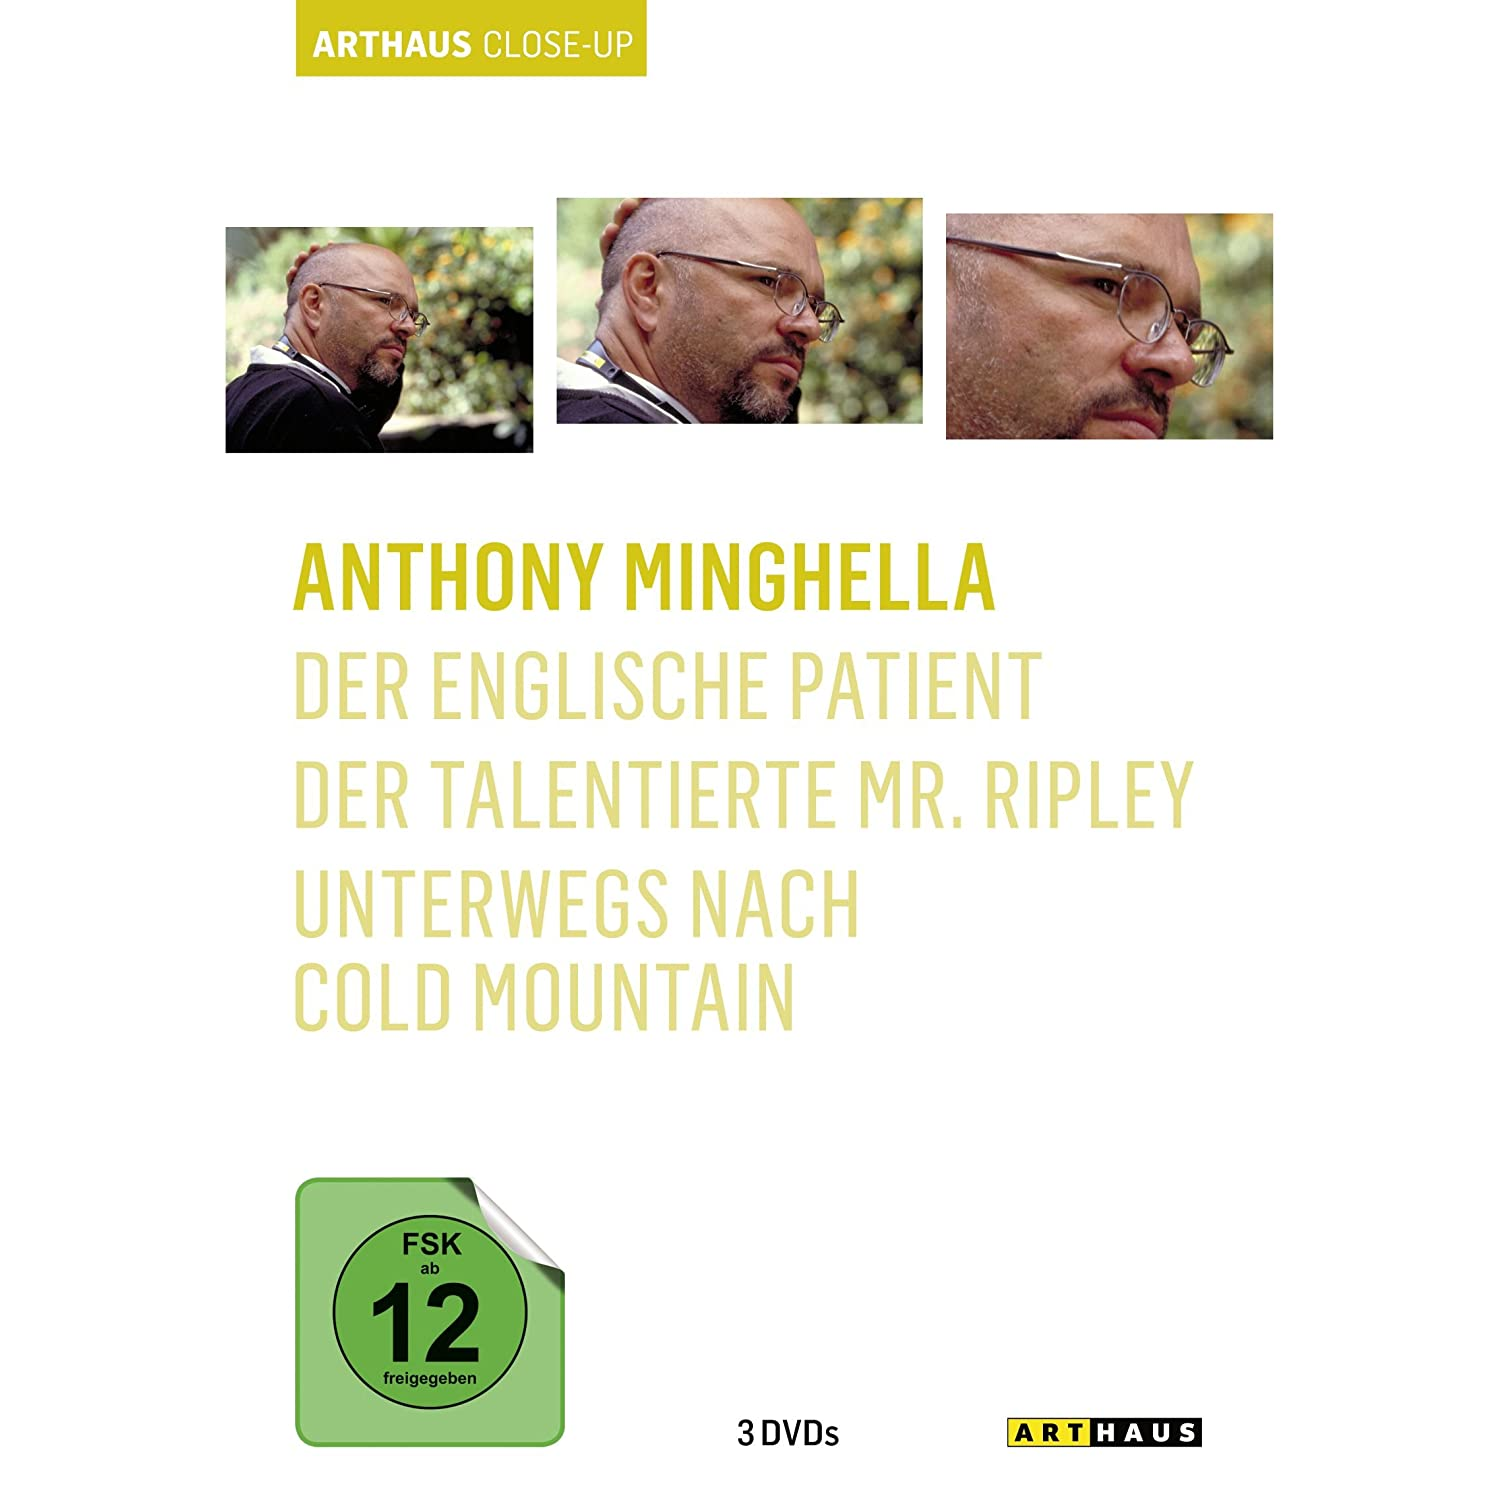 Anthony Minghella - Arthaus Close-Up [3 DVDs]; ca. 18 Euro